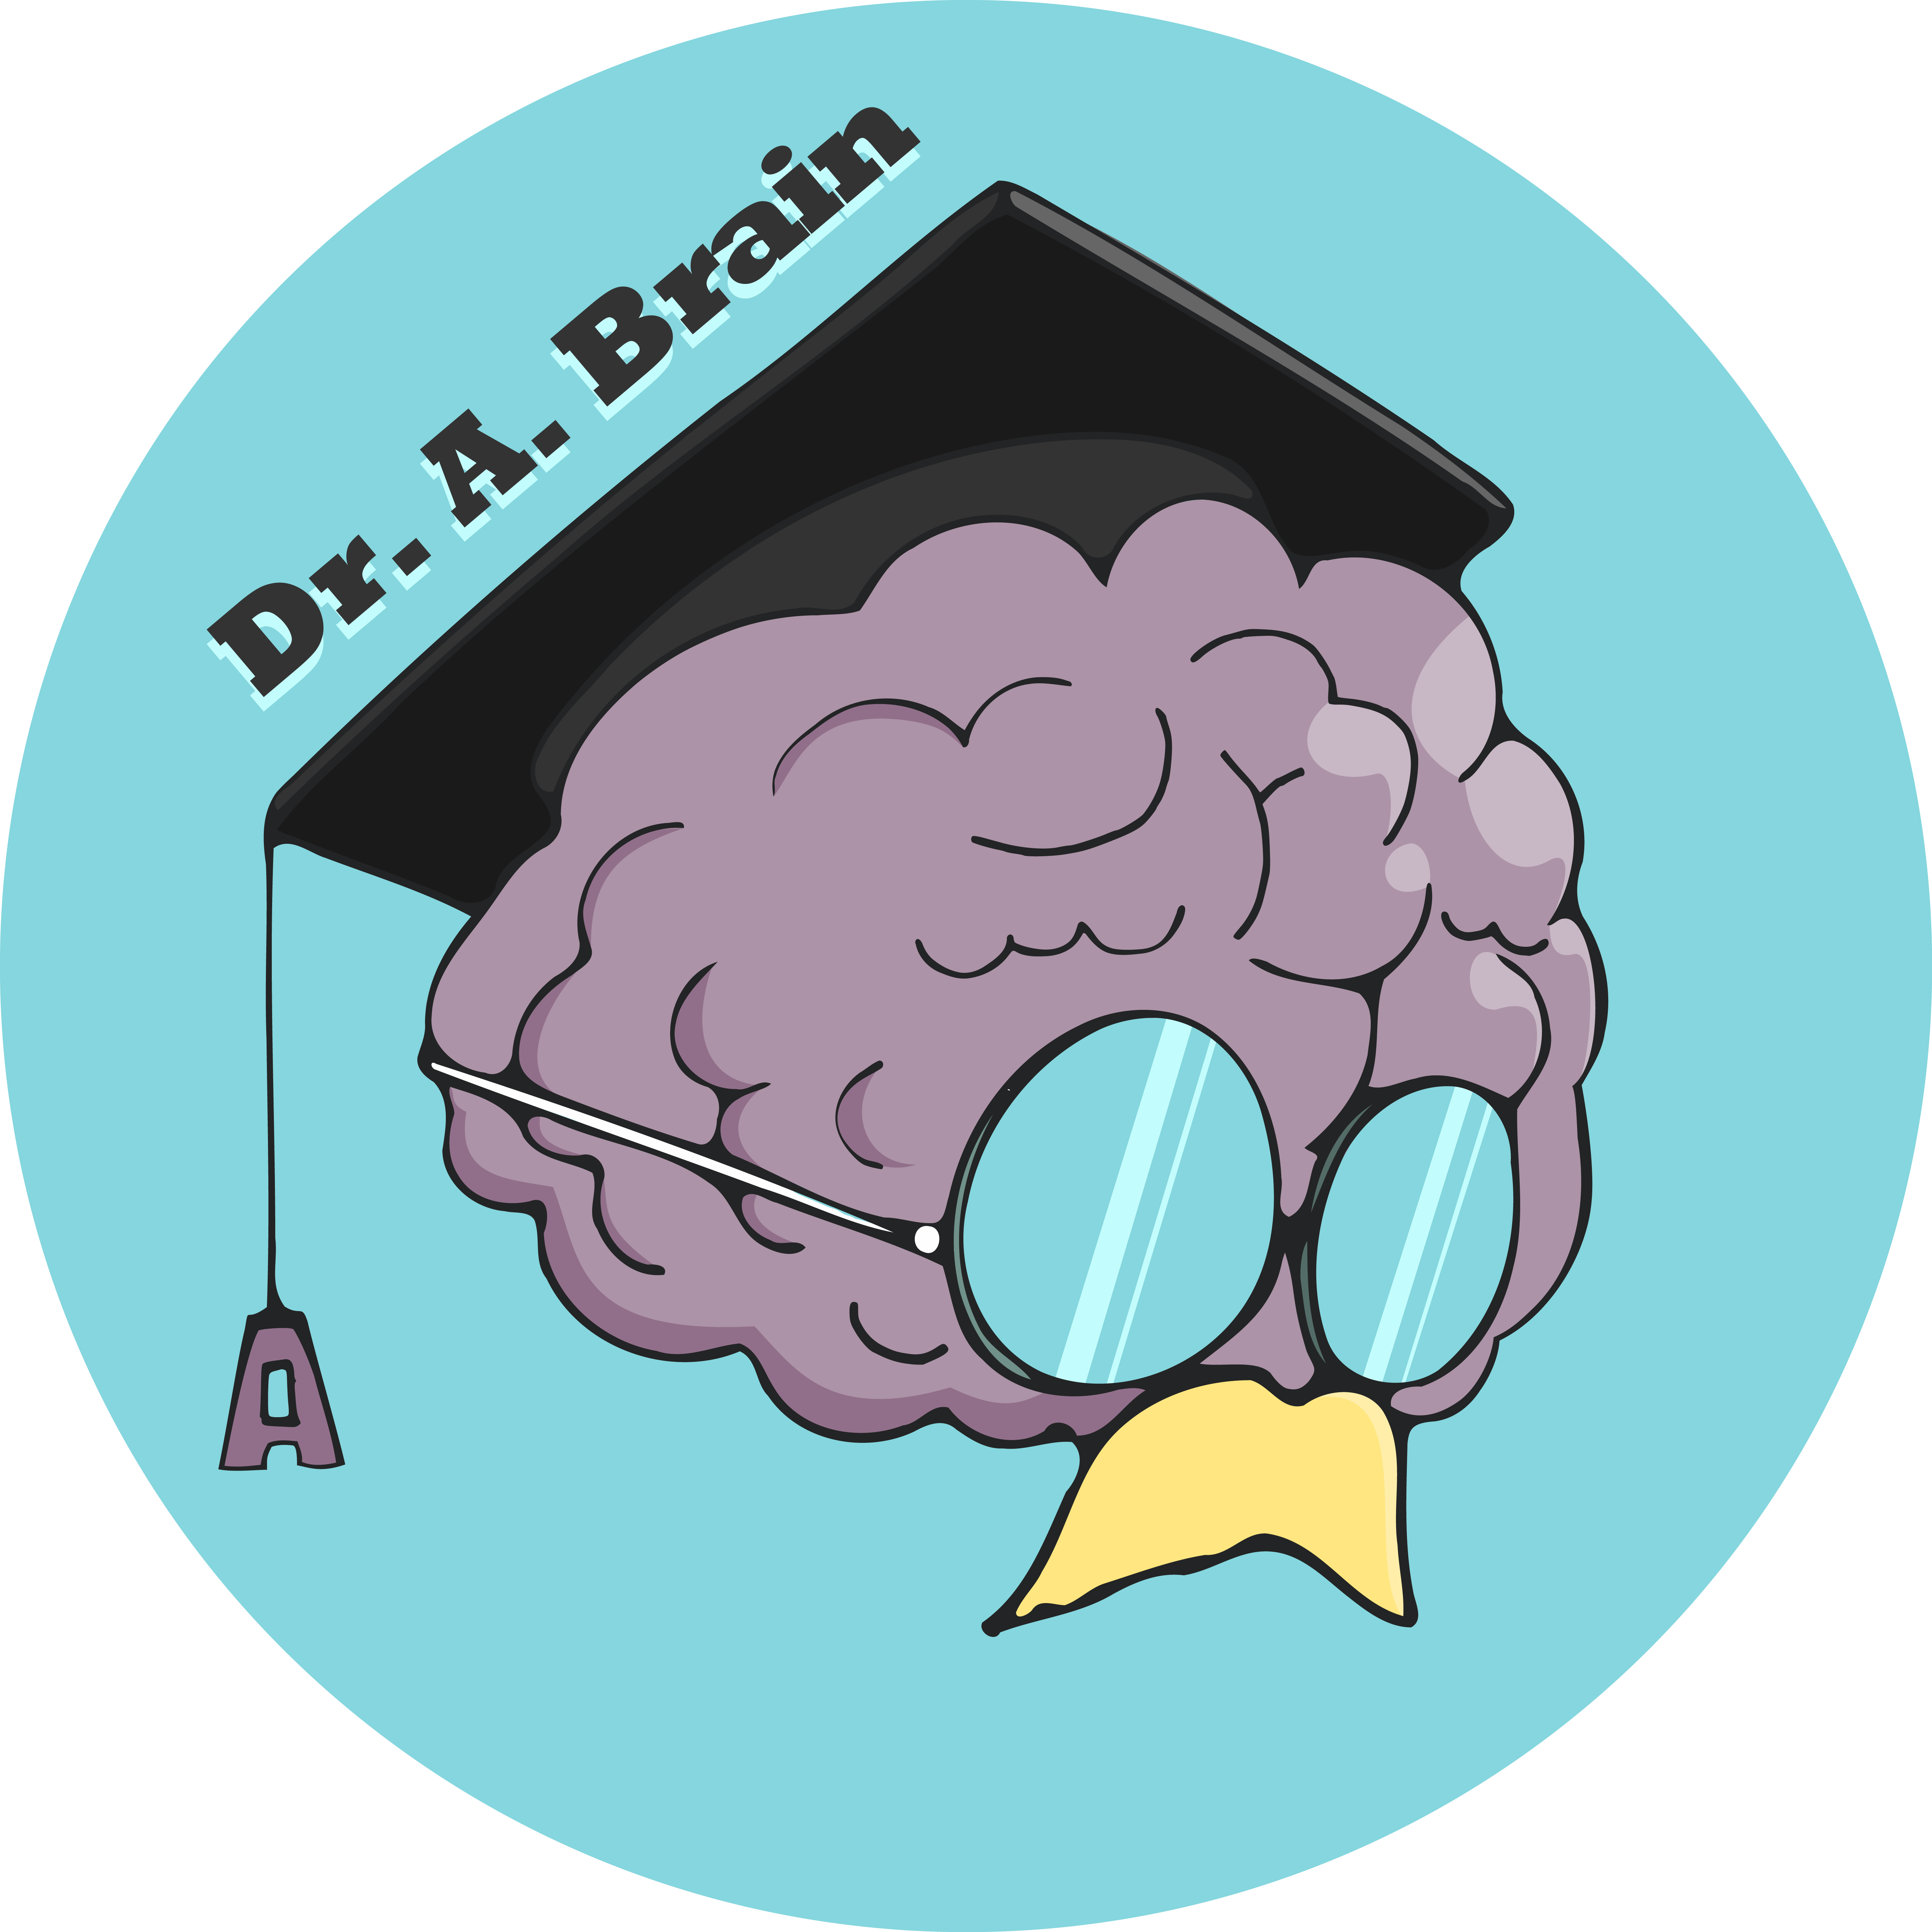 clipart library library Knowledge clipart math brain. Omega academy can help.